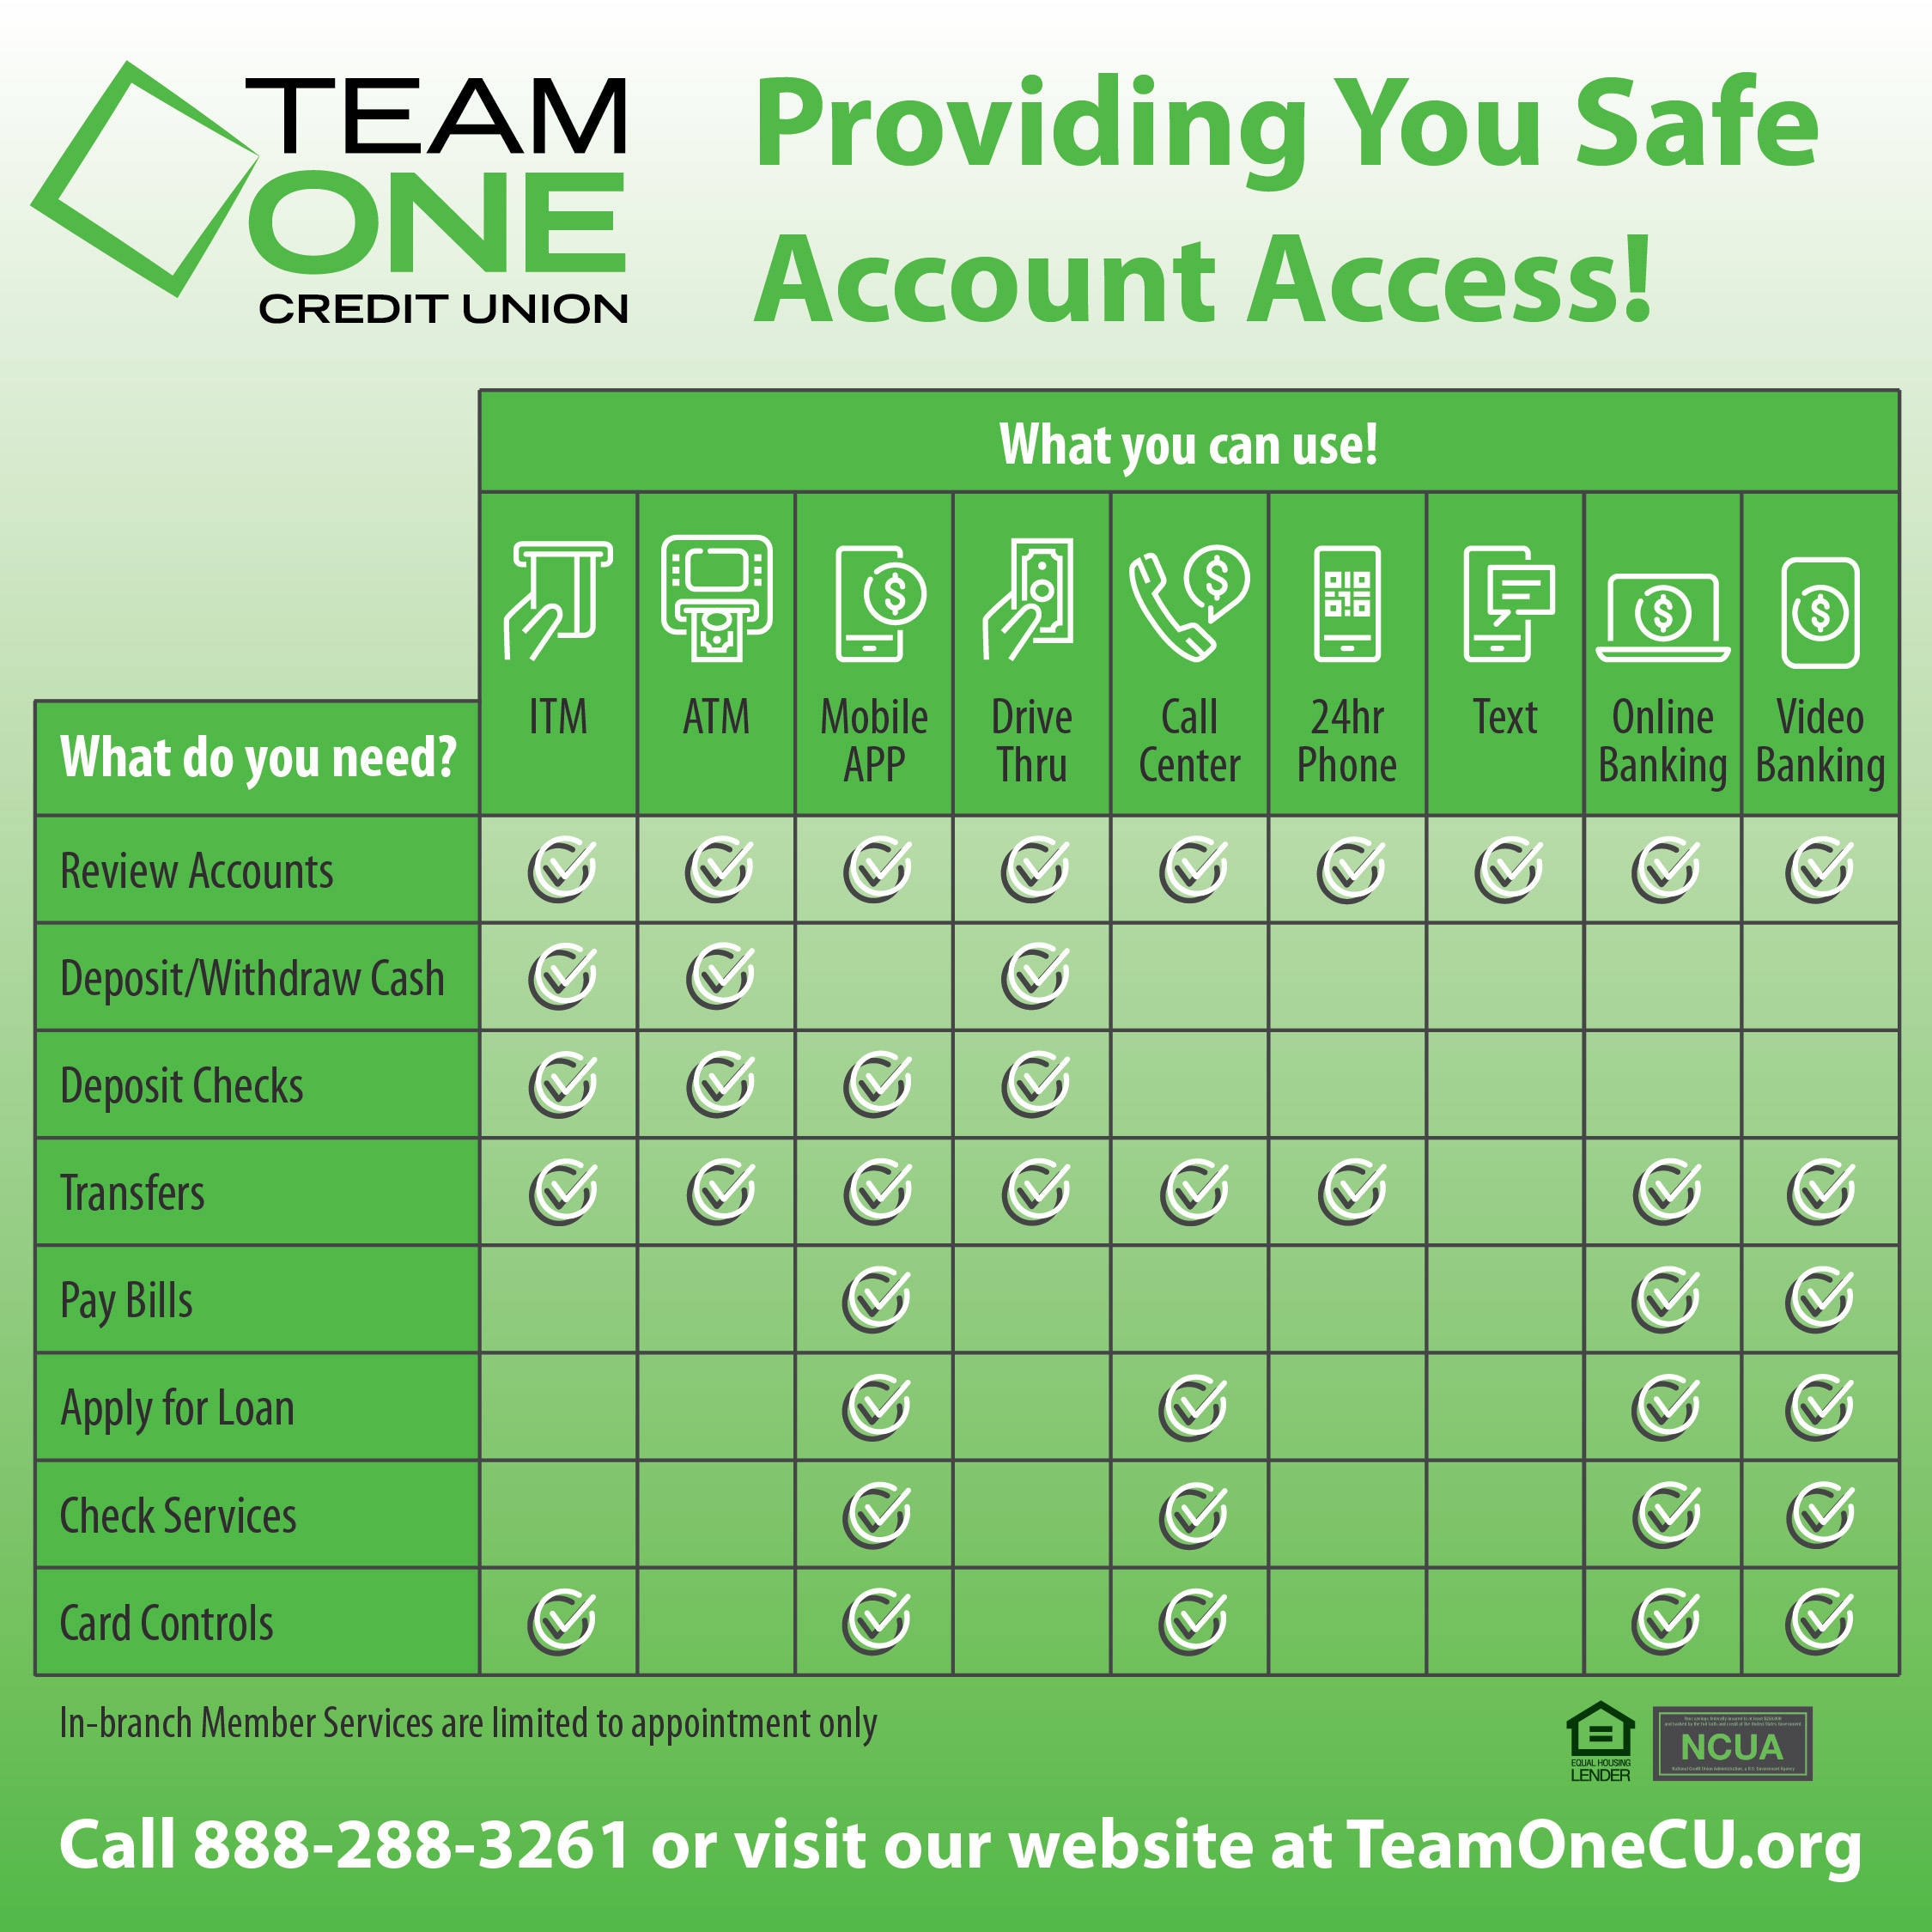 Account Access Chart with callouts